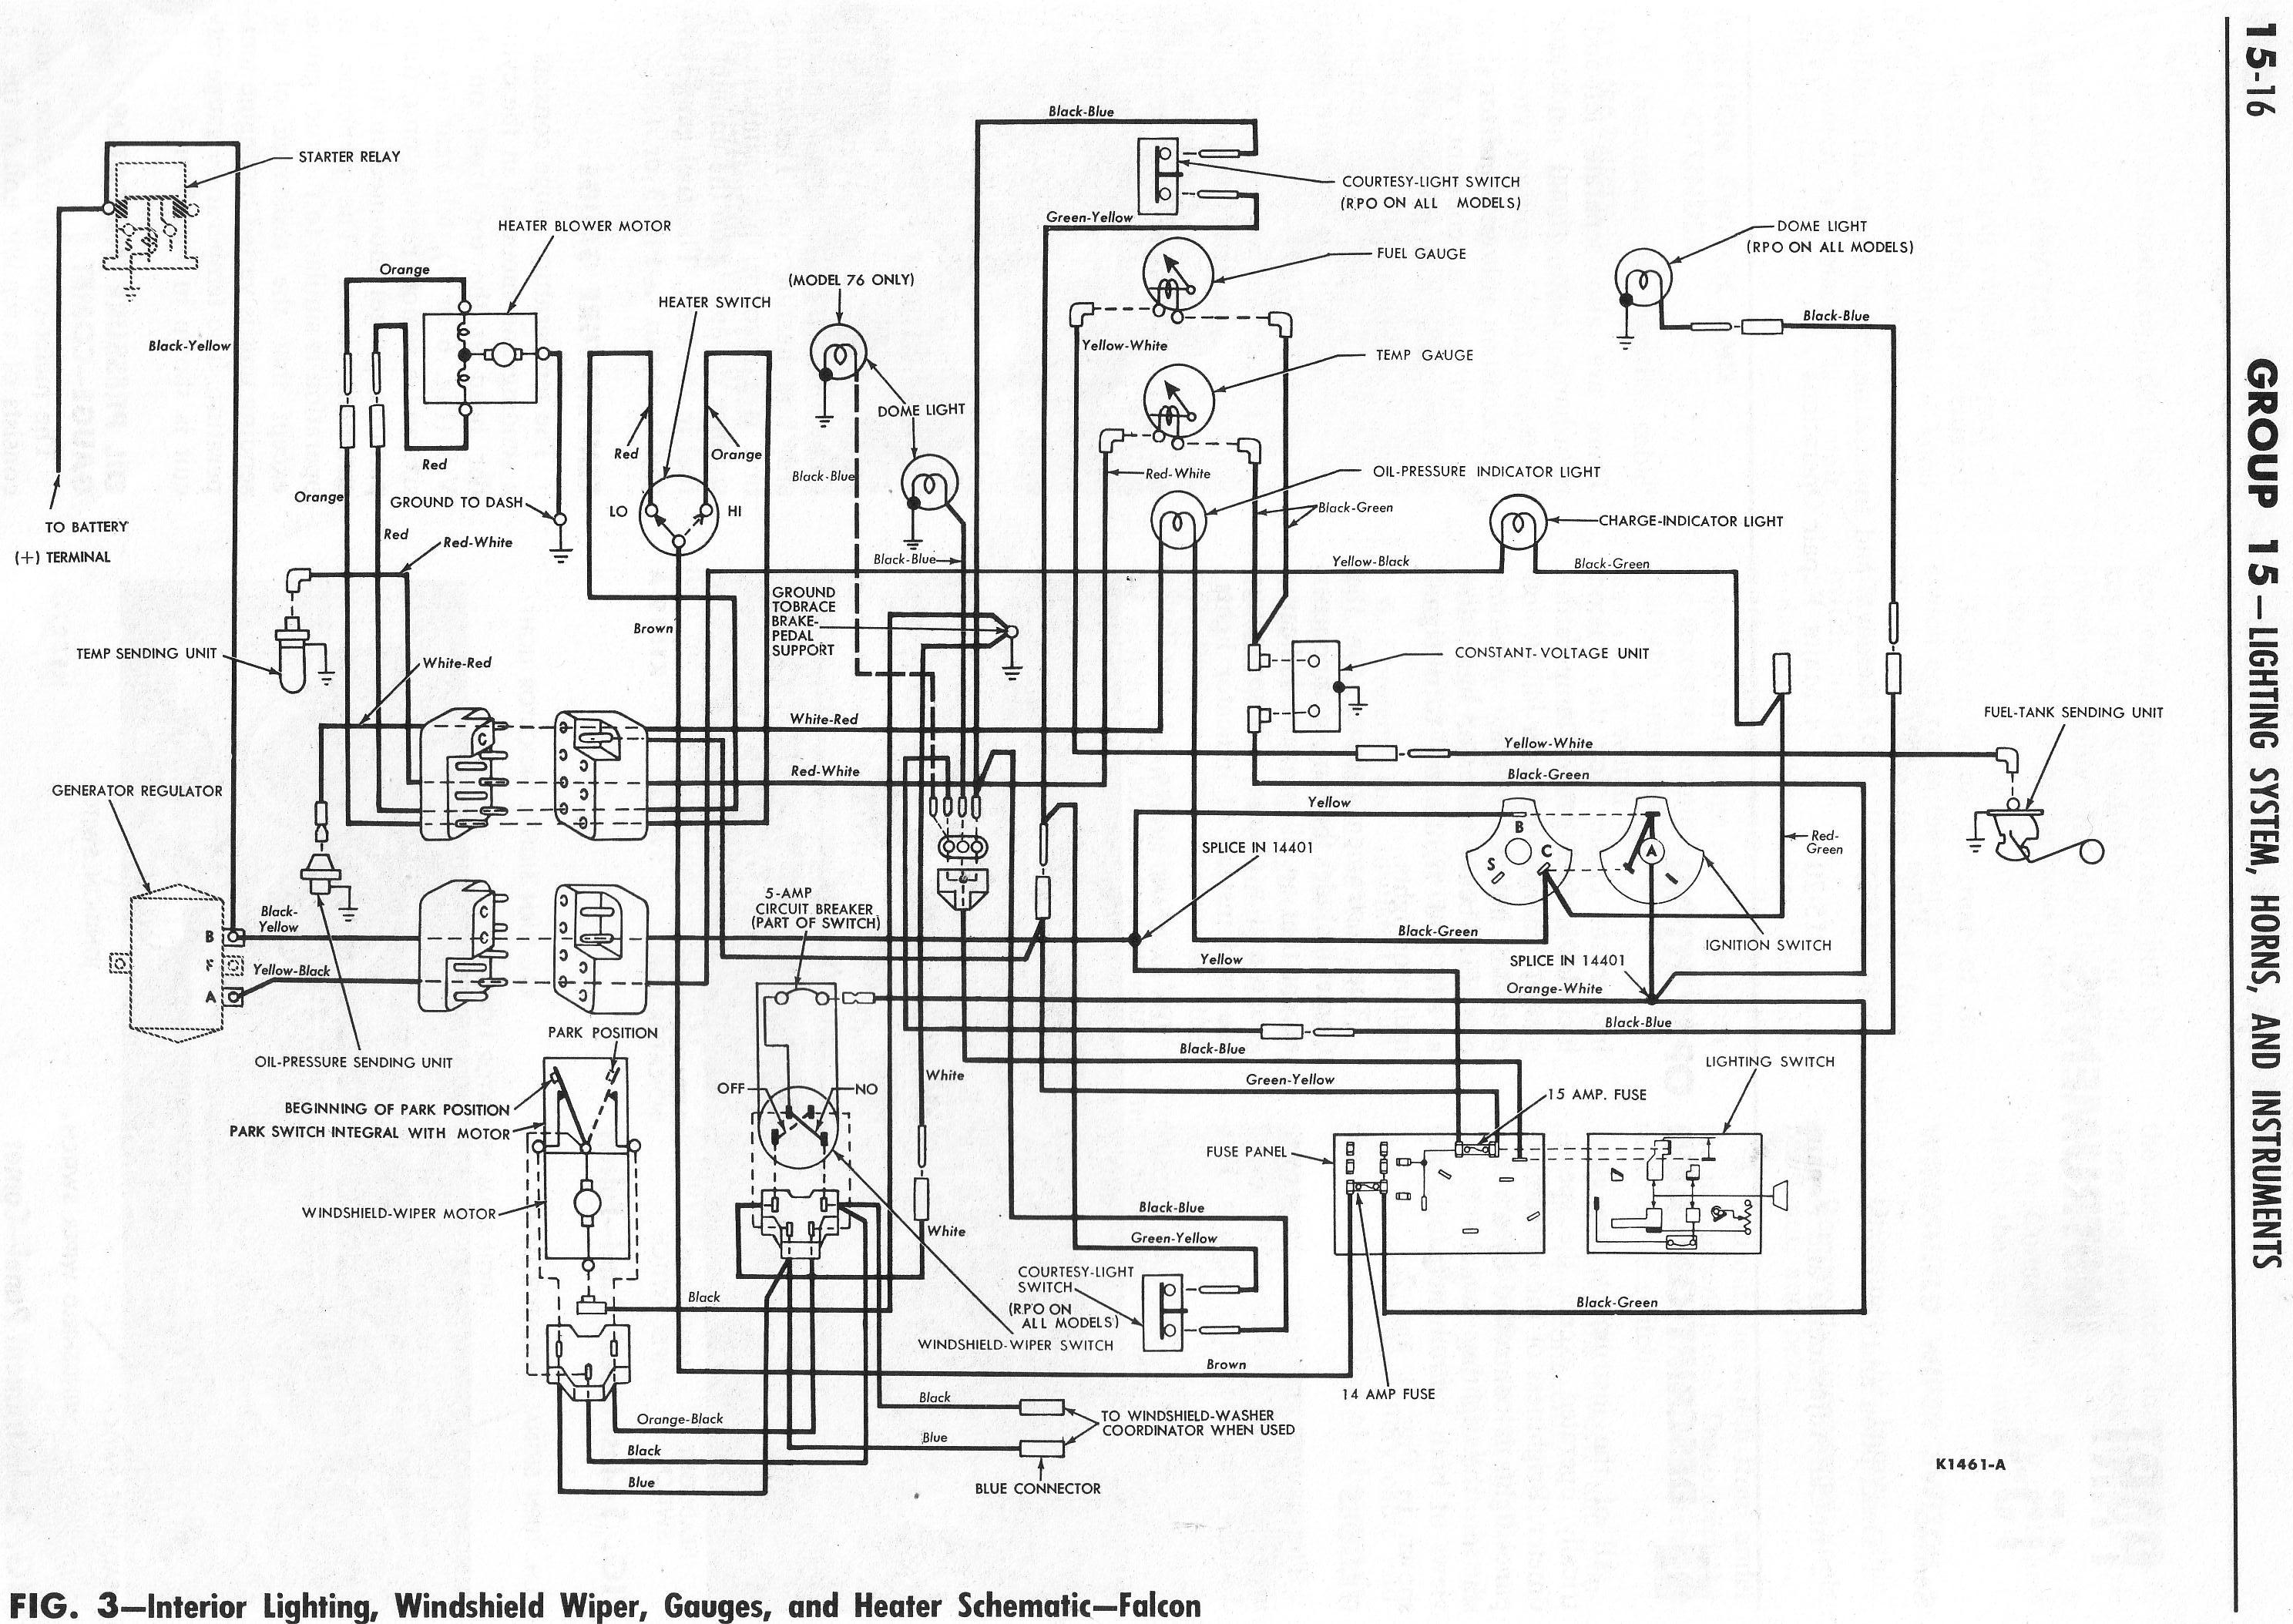 gmc schema moteur monophase a repulsion